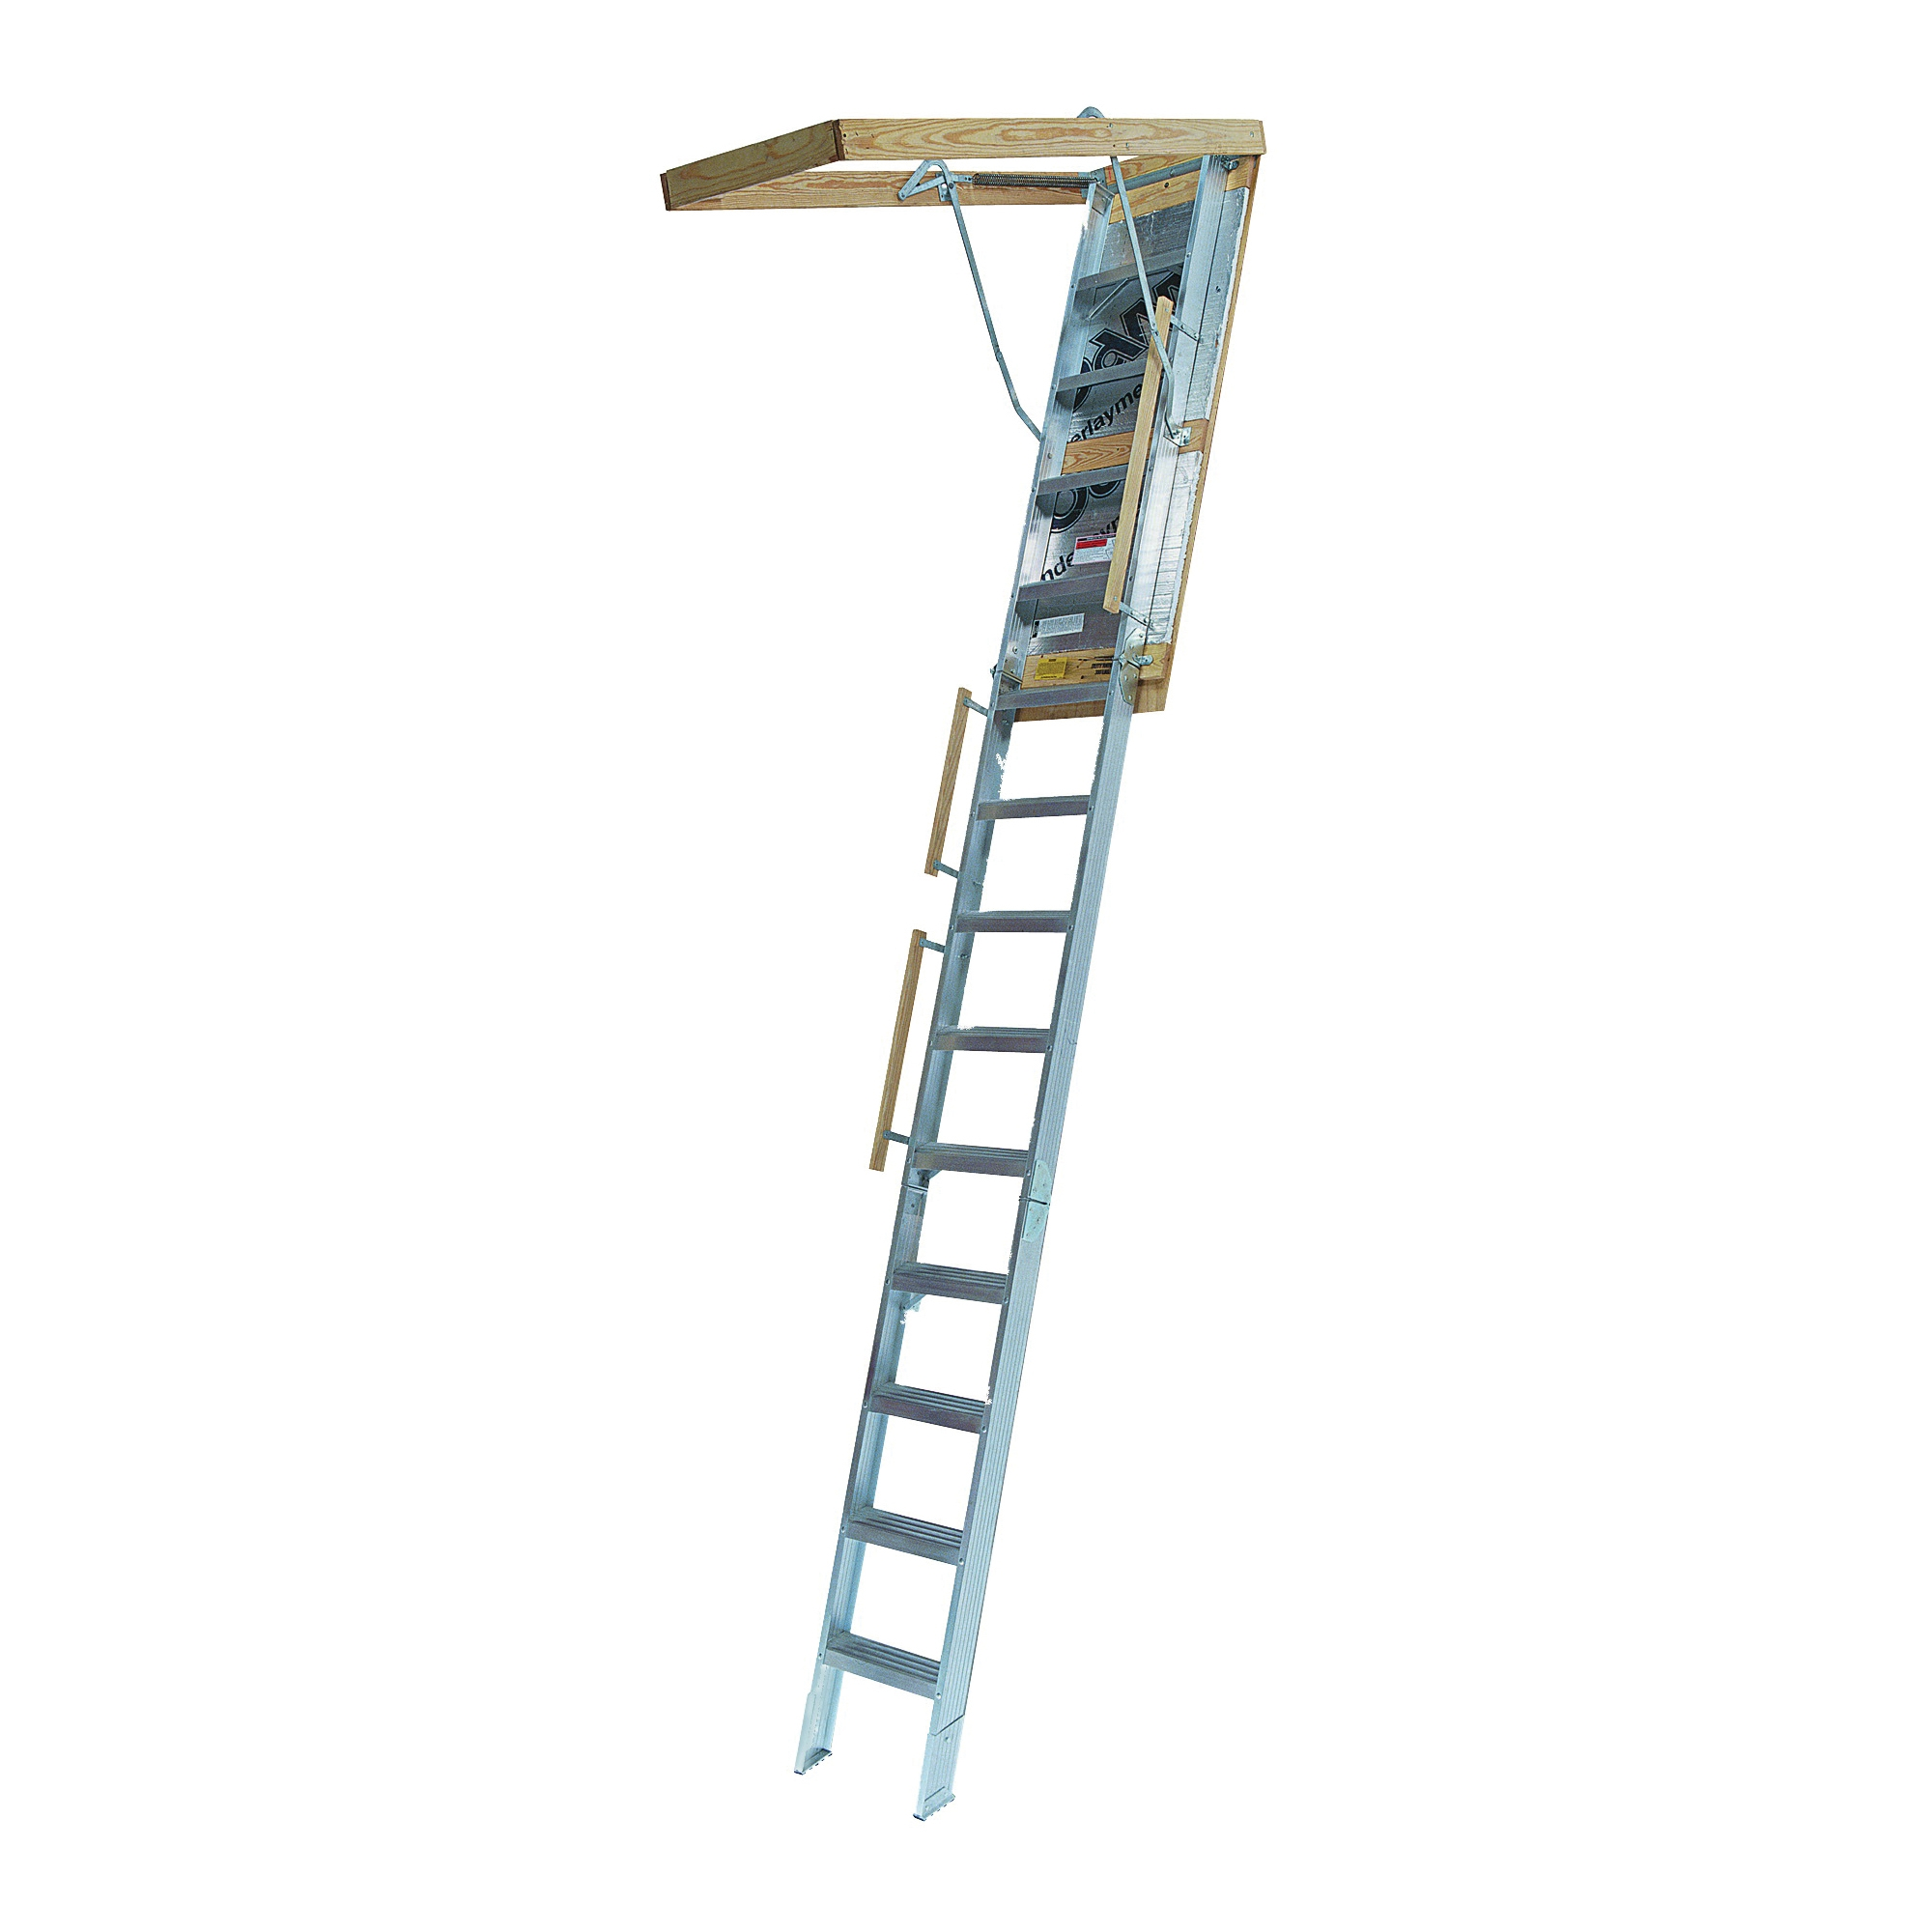 Picture of Louisville Everest Series AL258P Attic Ladder, 10 to 12 ft H Ceiling, 25-1/2 x 63 in Ceiling Opening, 13-Step